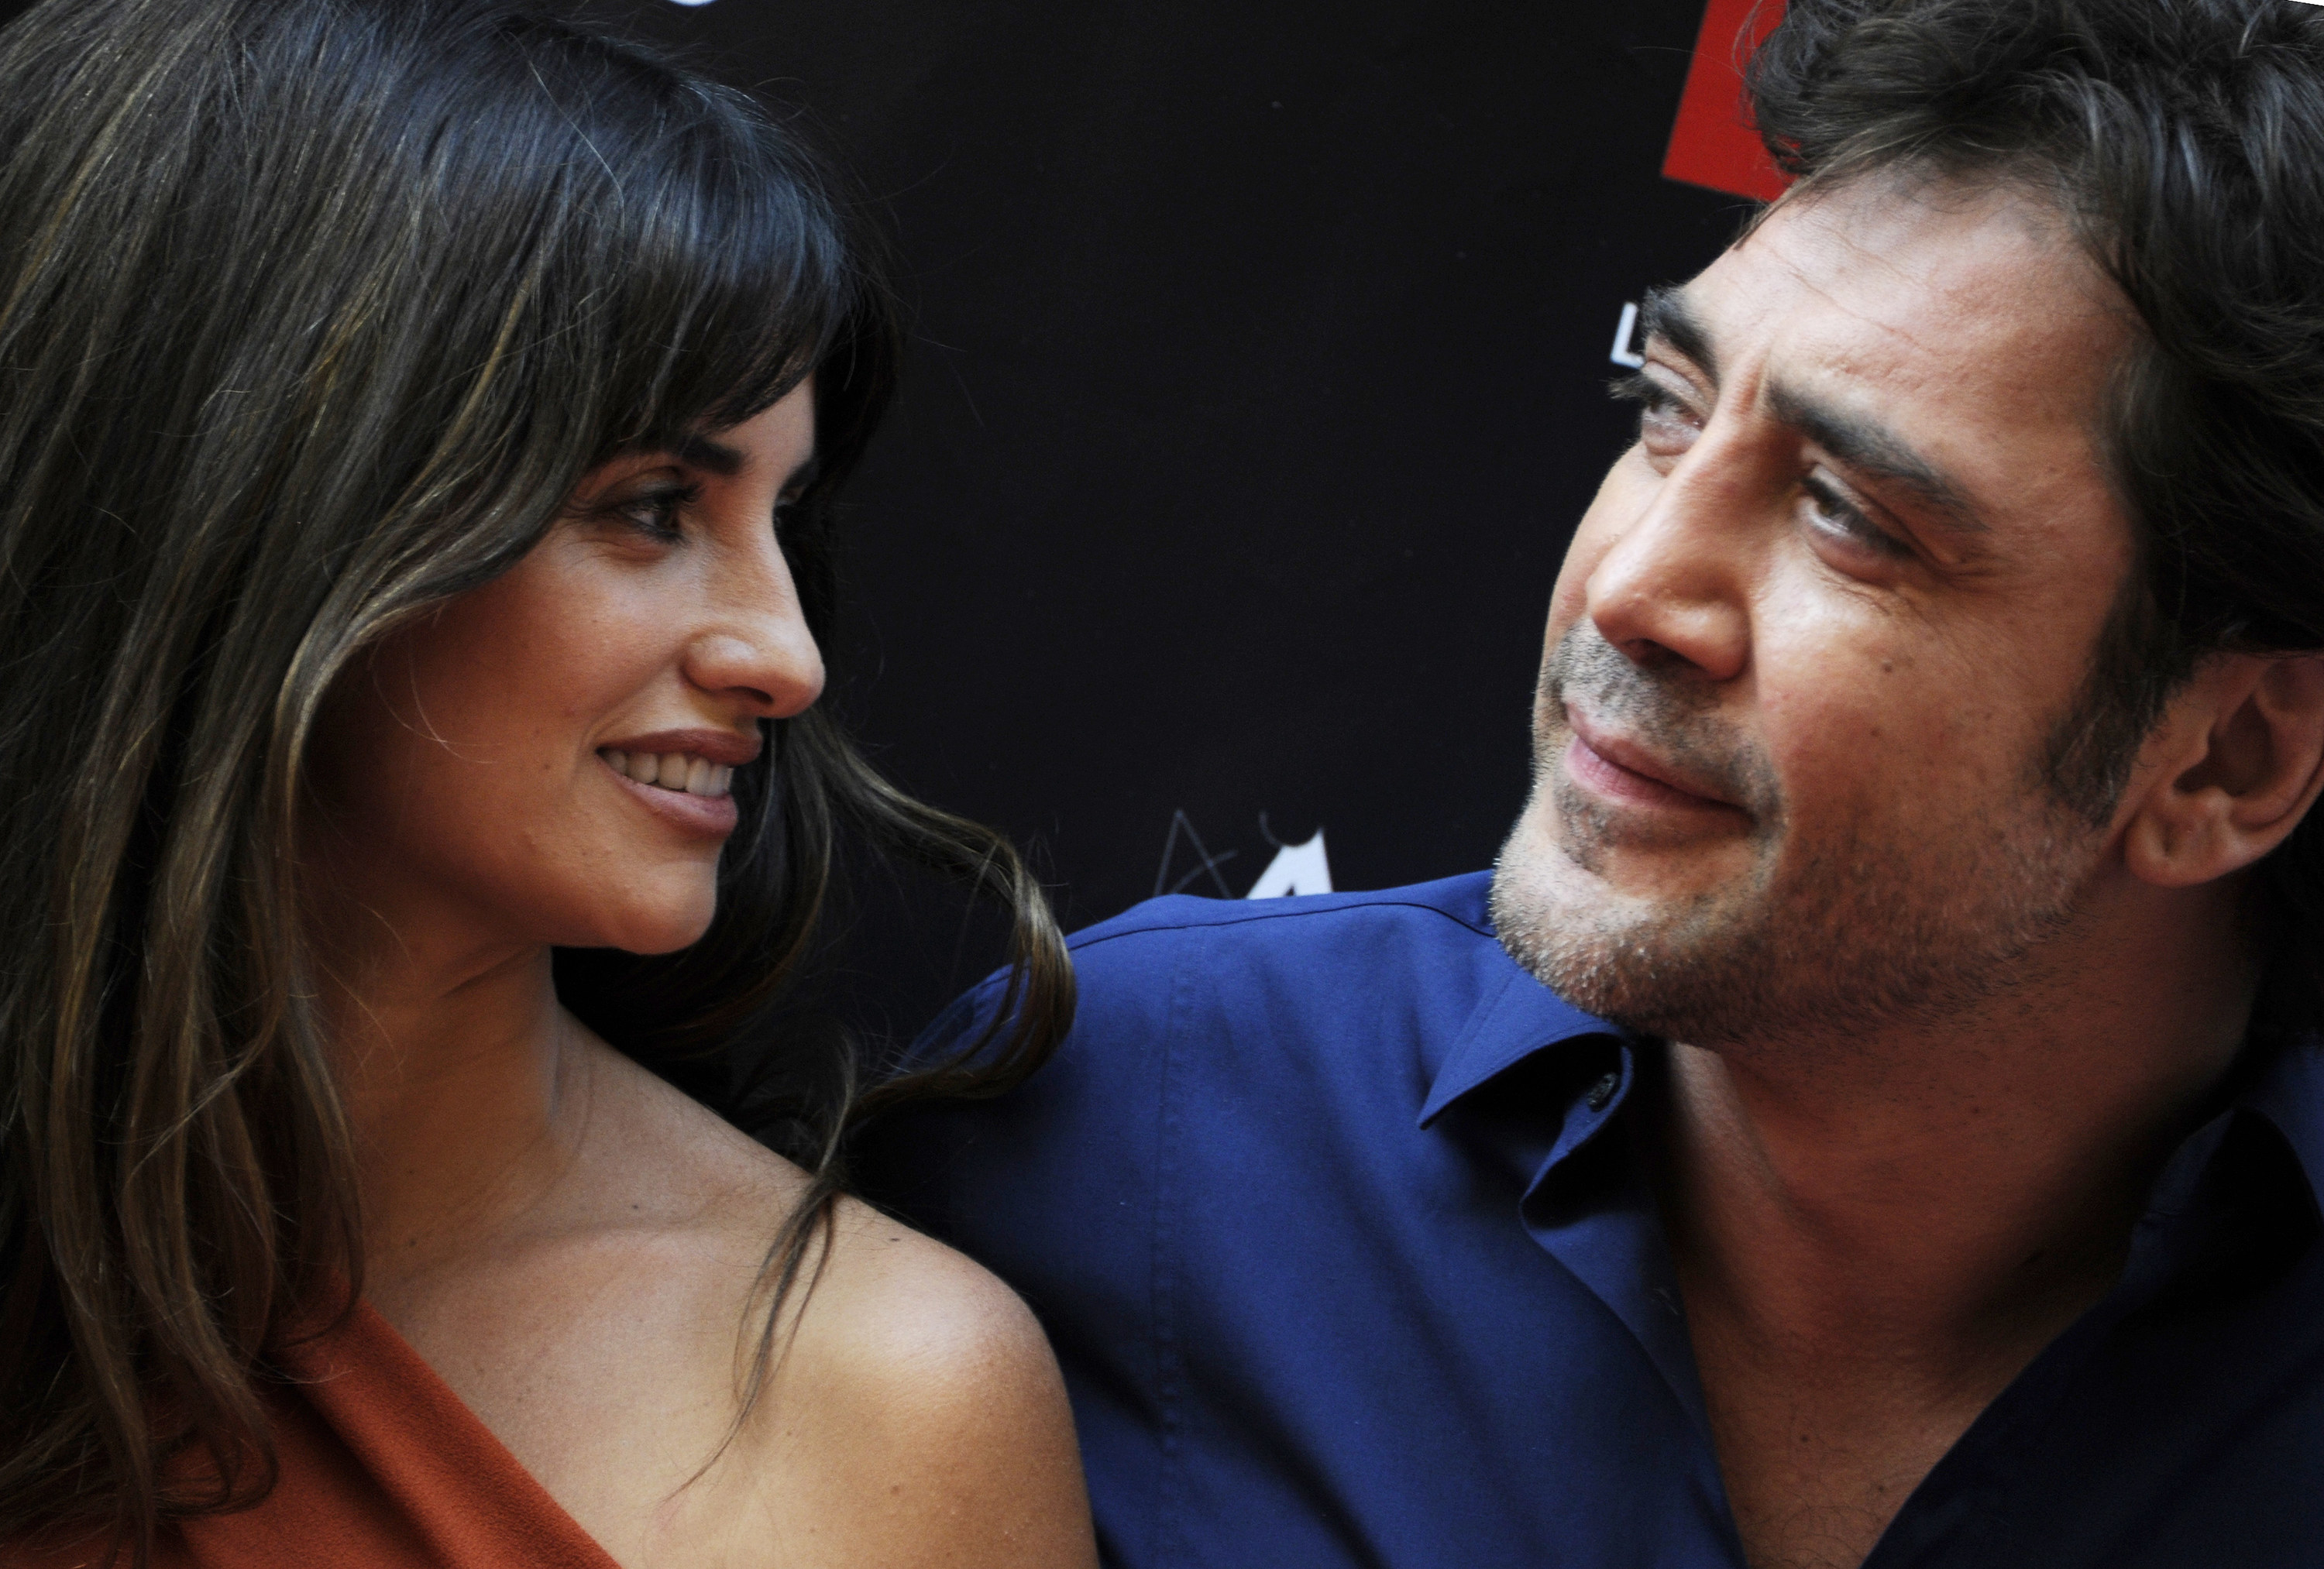 A photo of Penelope Cruz gazing at Javier Bardem